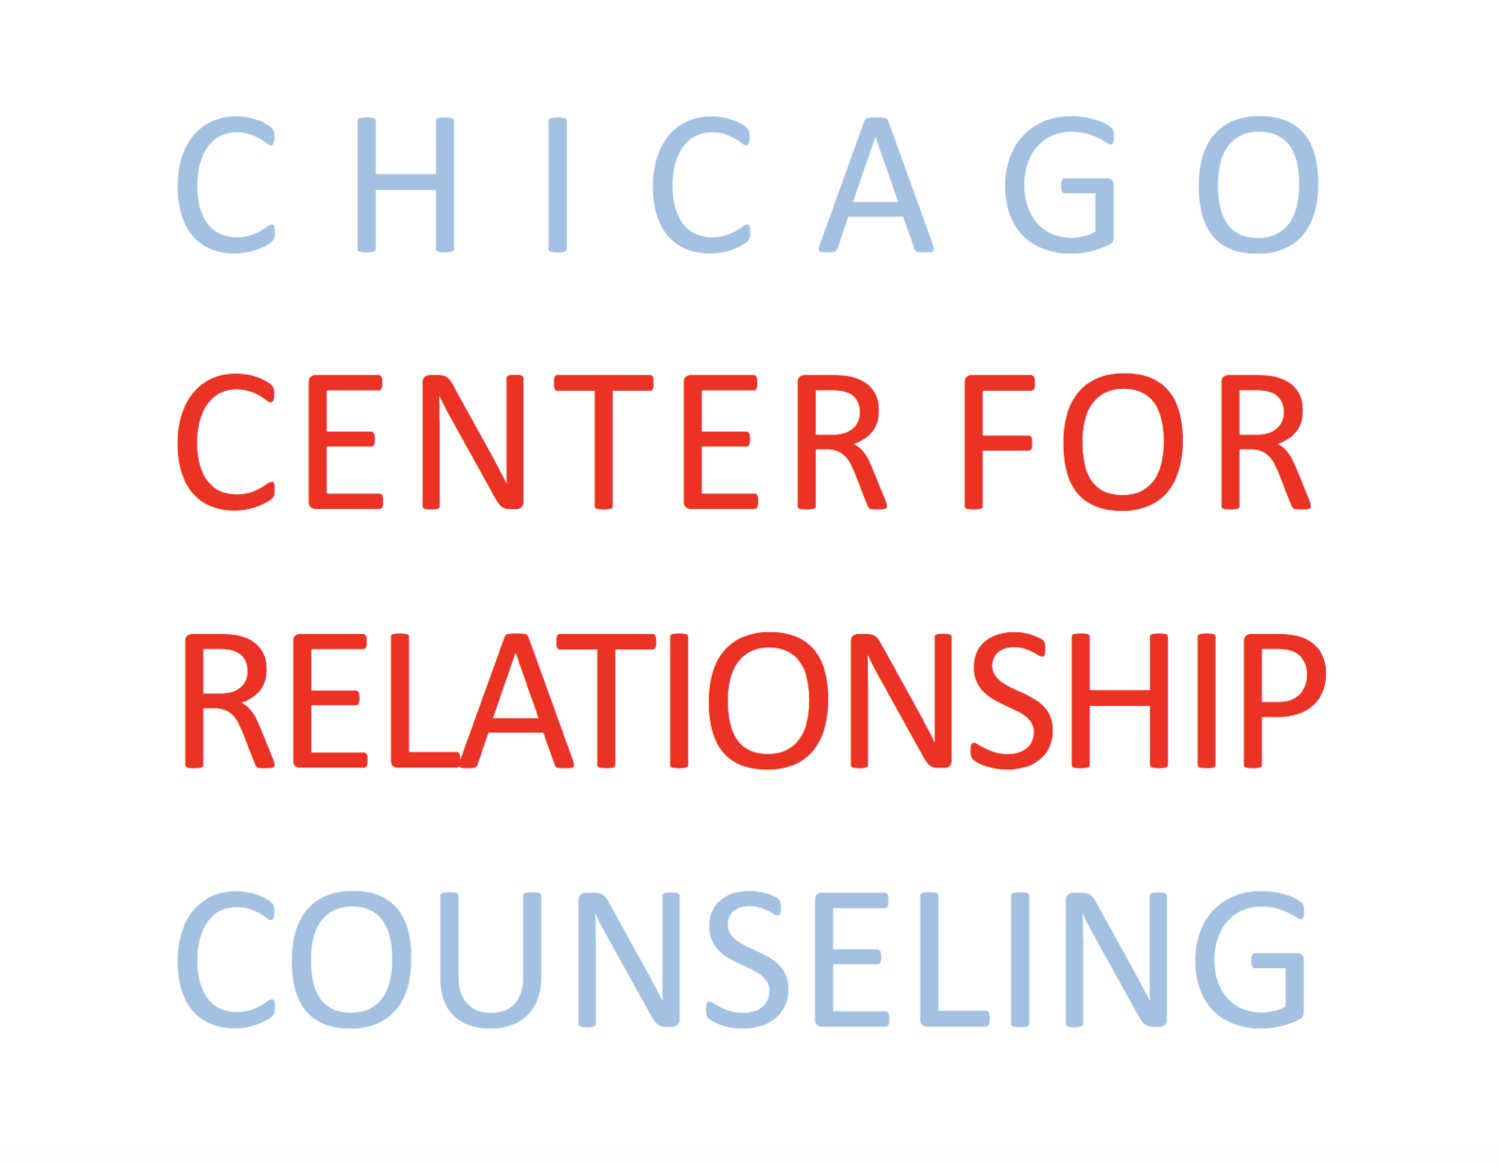 Chicago Center for Relationship Counseling